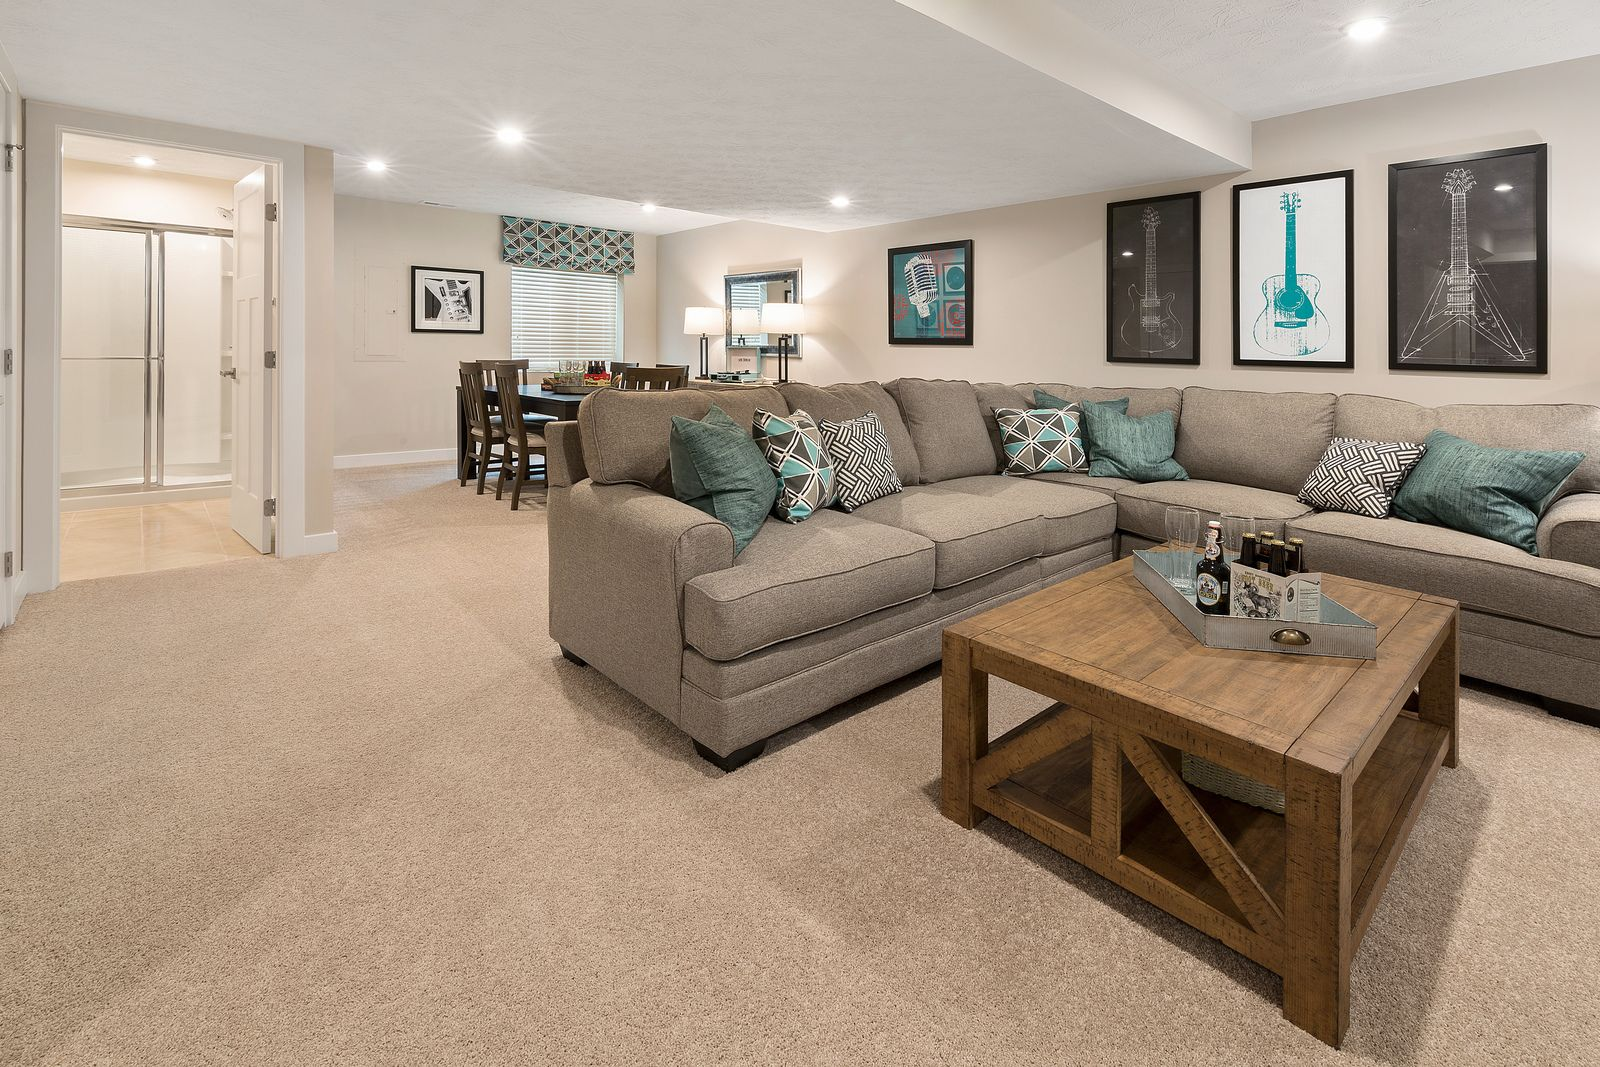 Living Area featured in the Allegheny By HeartlandHomes in Morgantown, WV